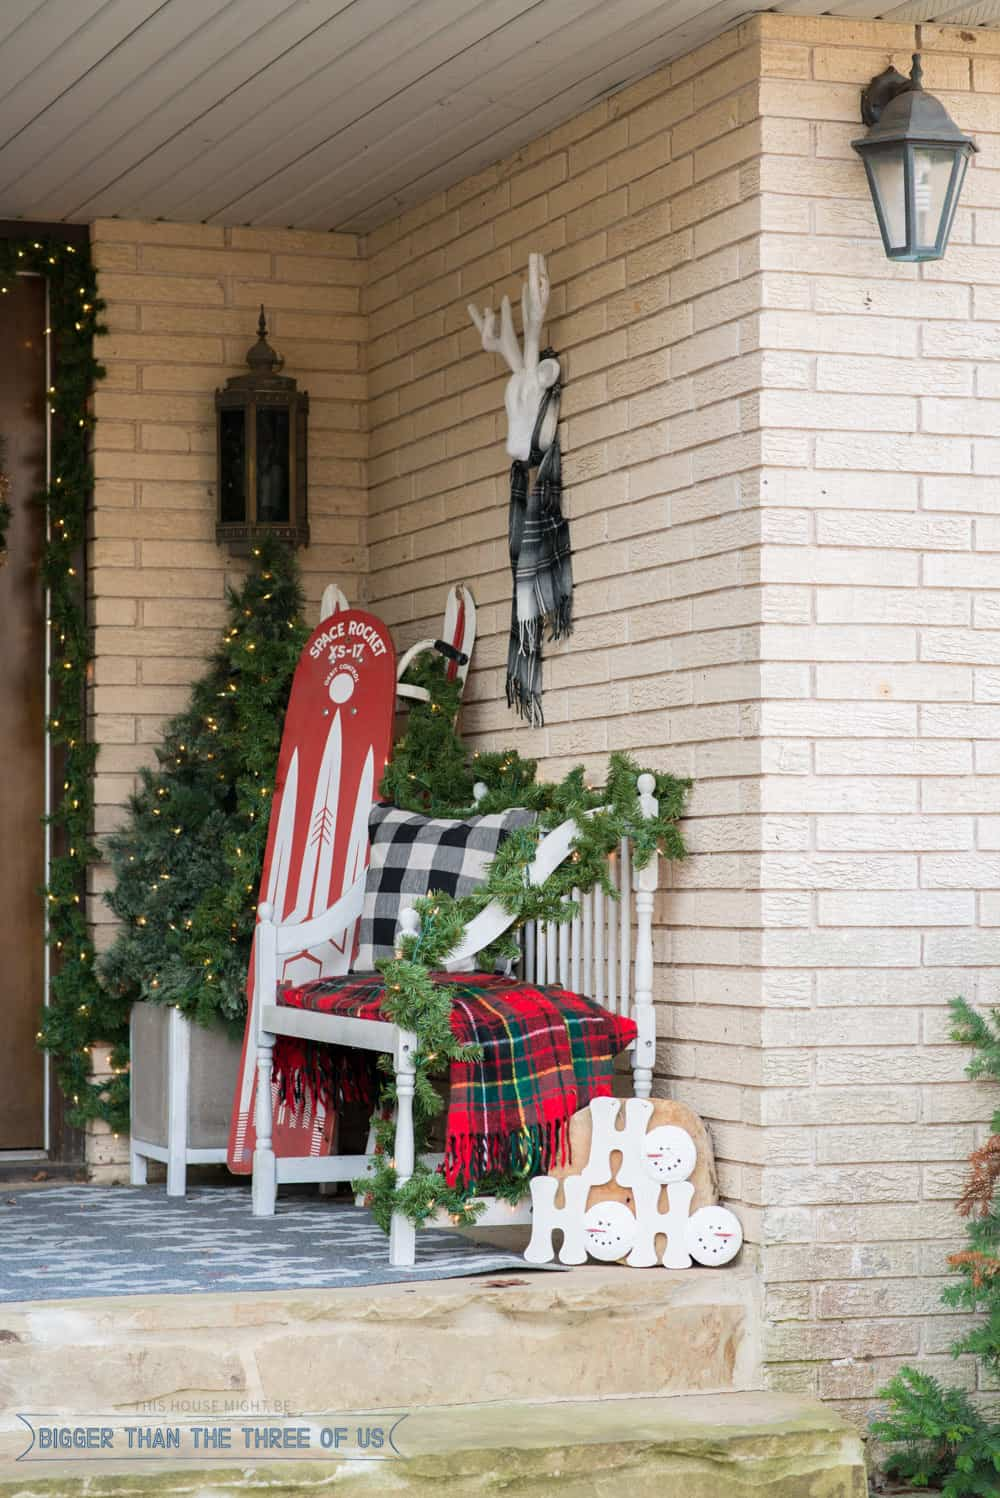 How To Decorate Your Front Porch Decorating Your Front Porch For Christmas - Bigger Than